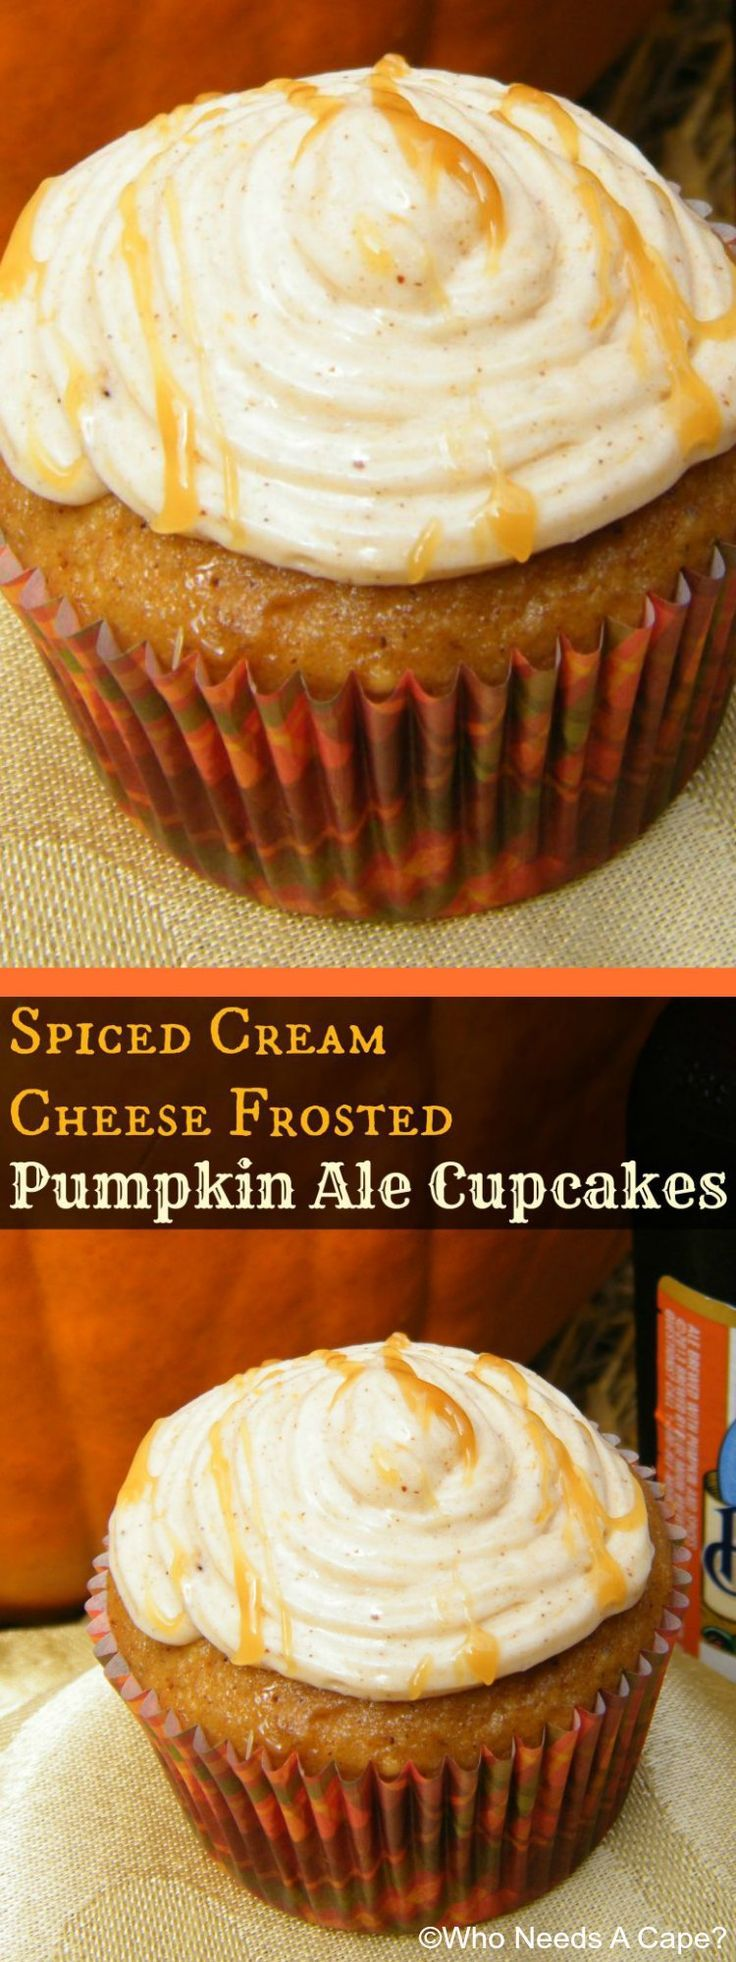 Love fall flavors & beer? Then you'll love these Spiced Cream Cheese Frosted Pumpkin Ale Cupcakes as they combine the best of both worlds. They are amazing.